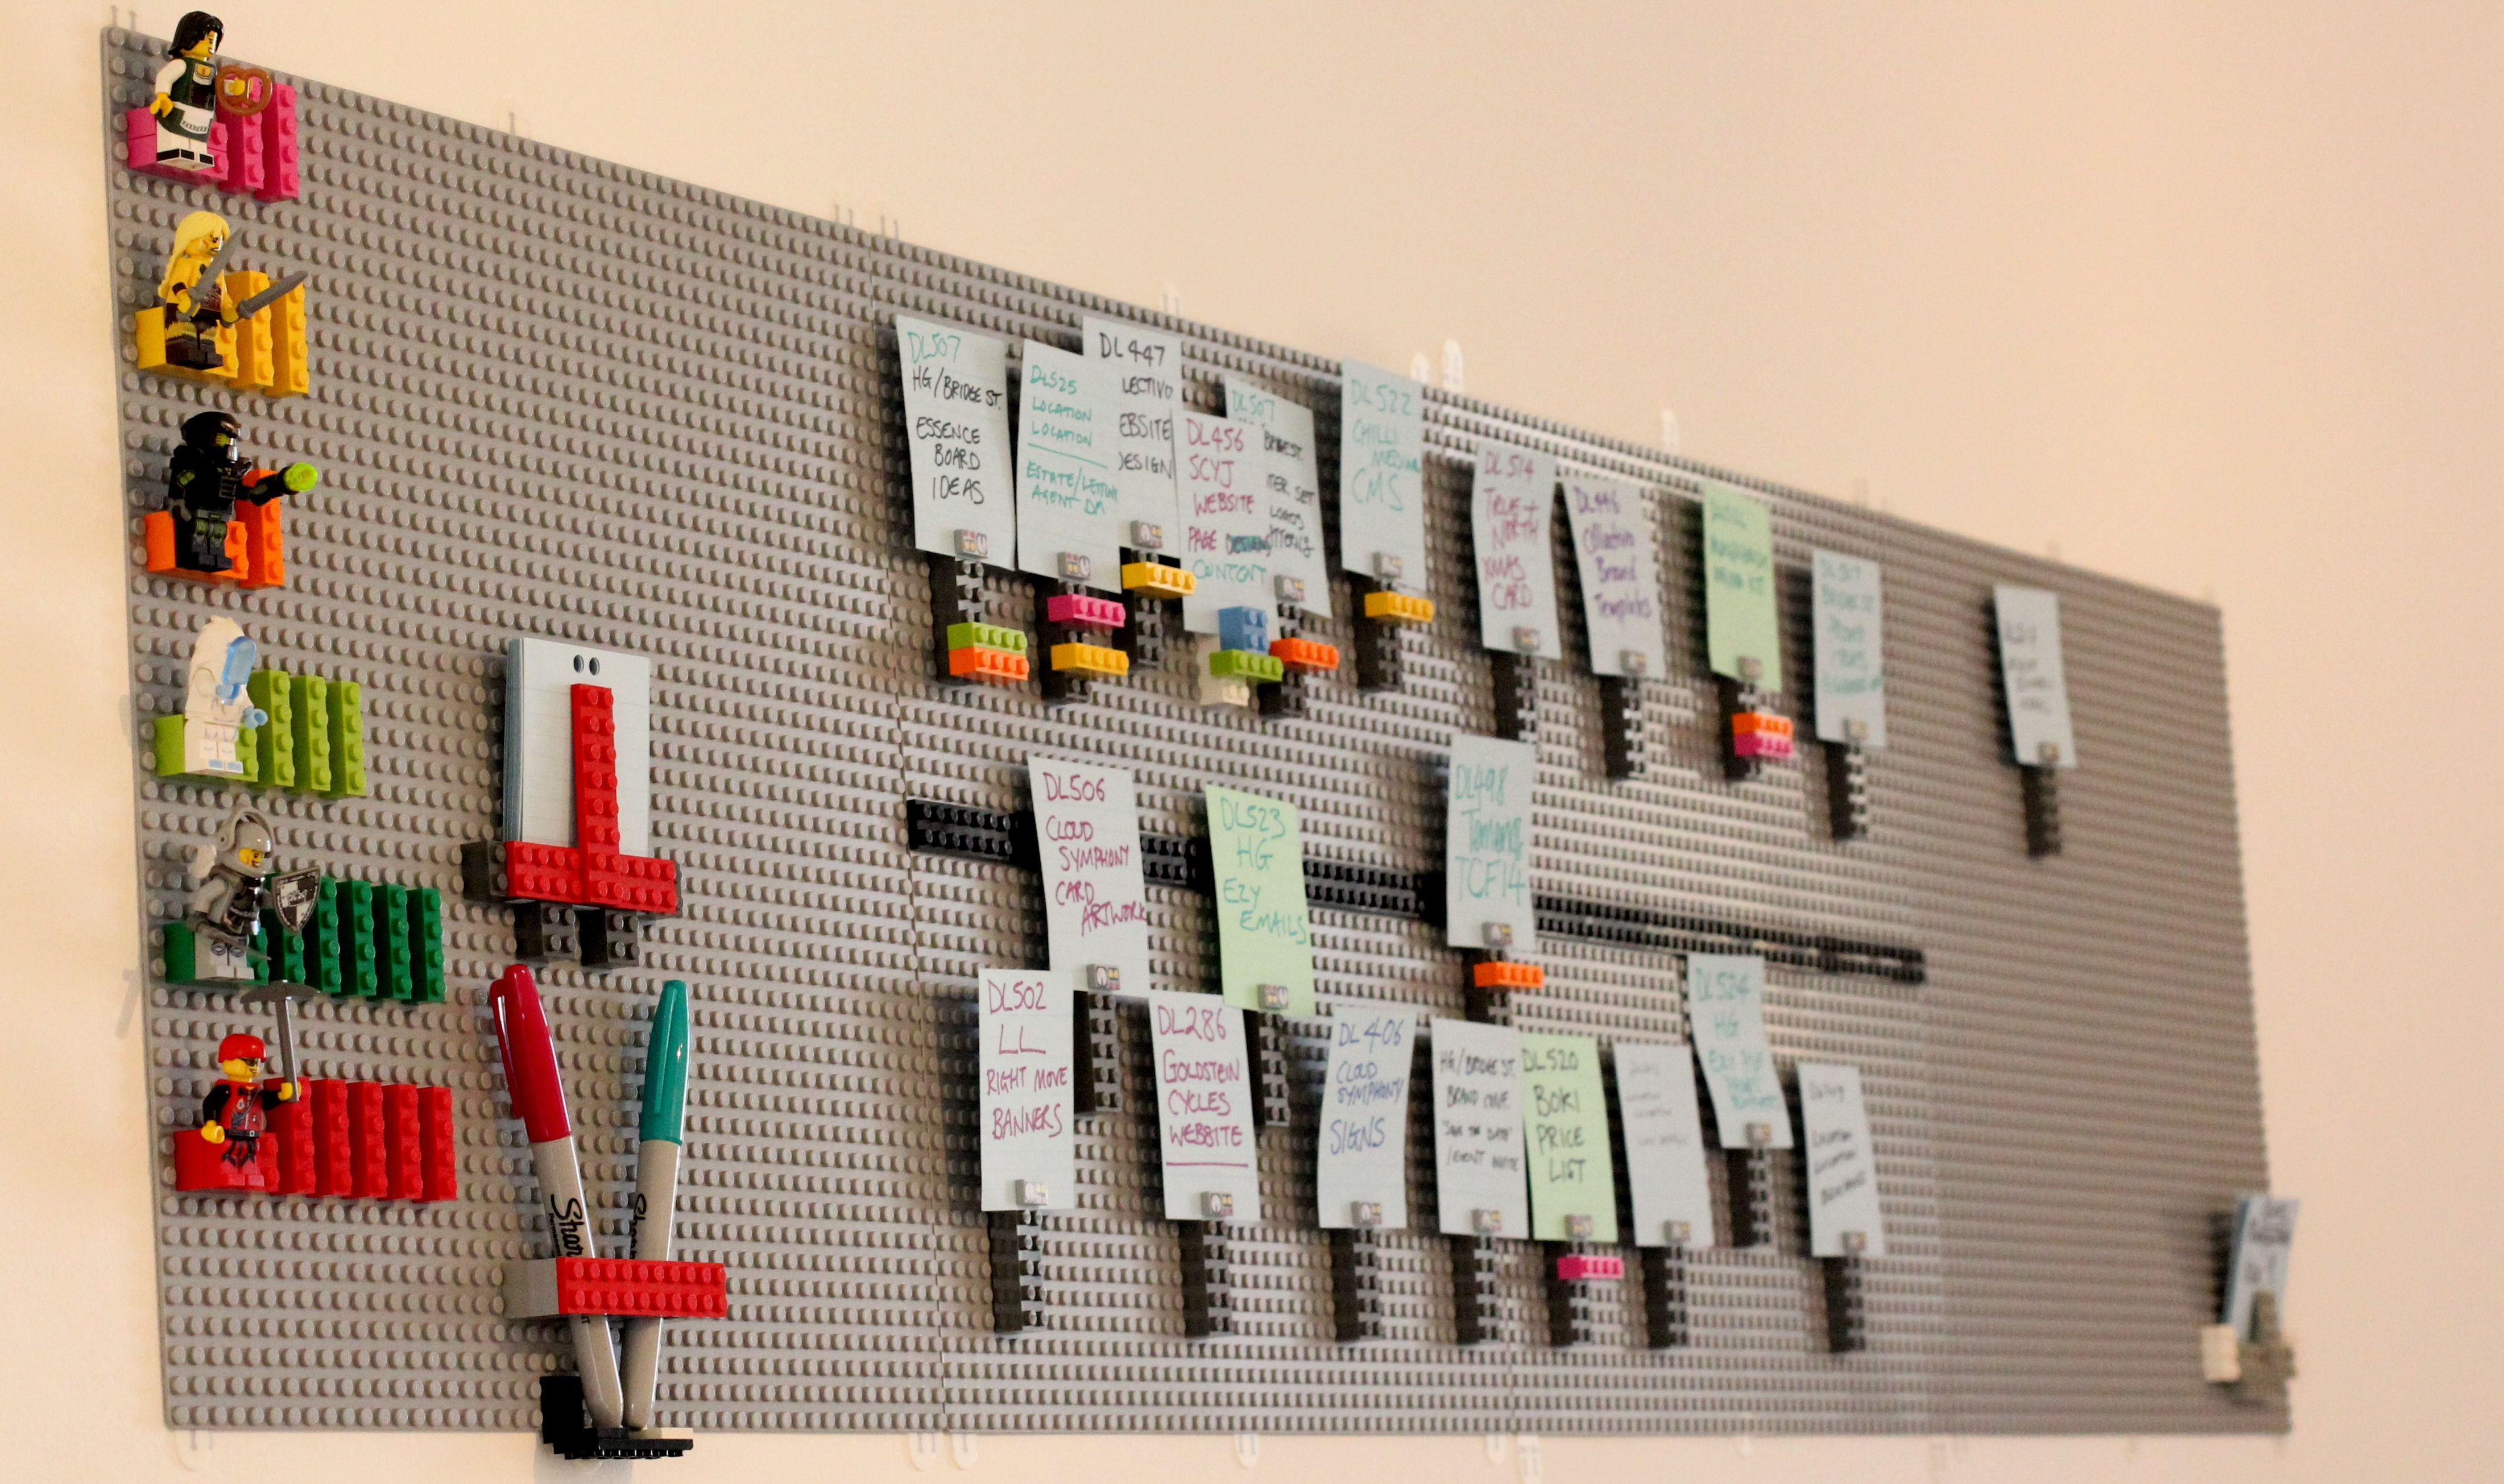 Pin By Ta Tanisha Robinson On Personal Kb Lego Projects